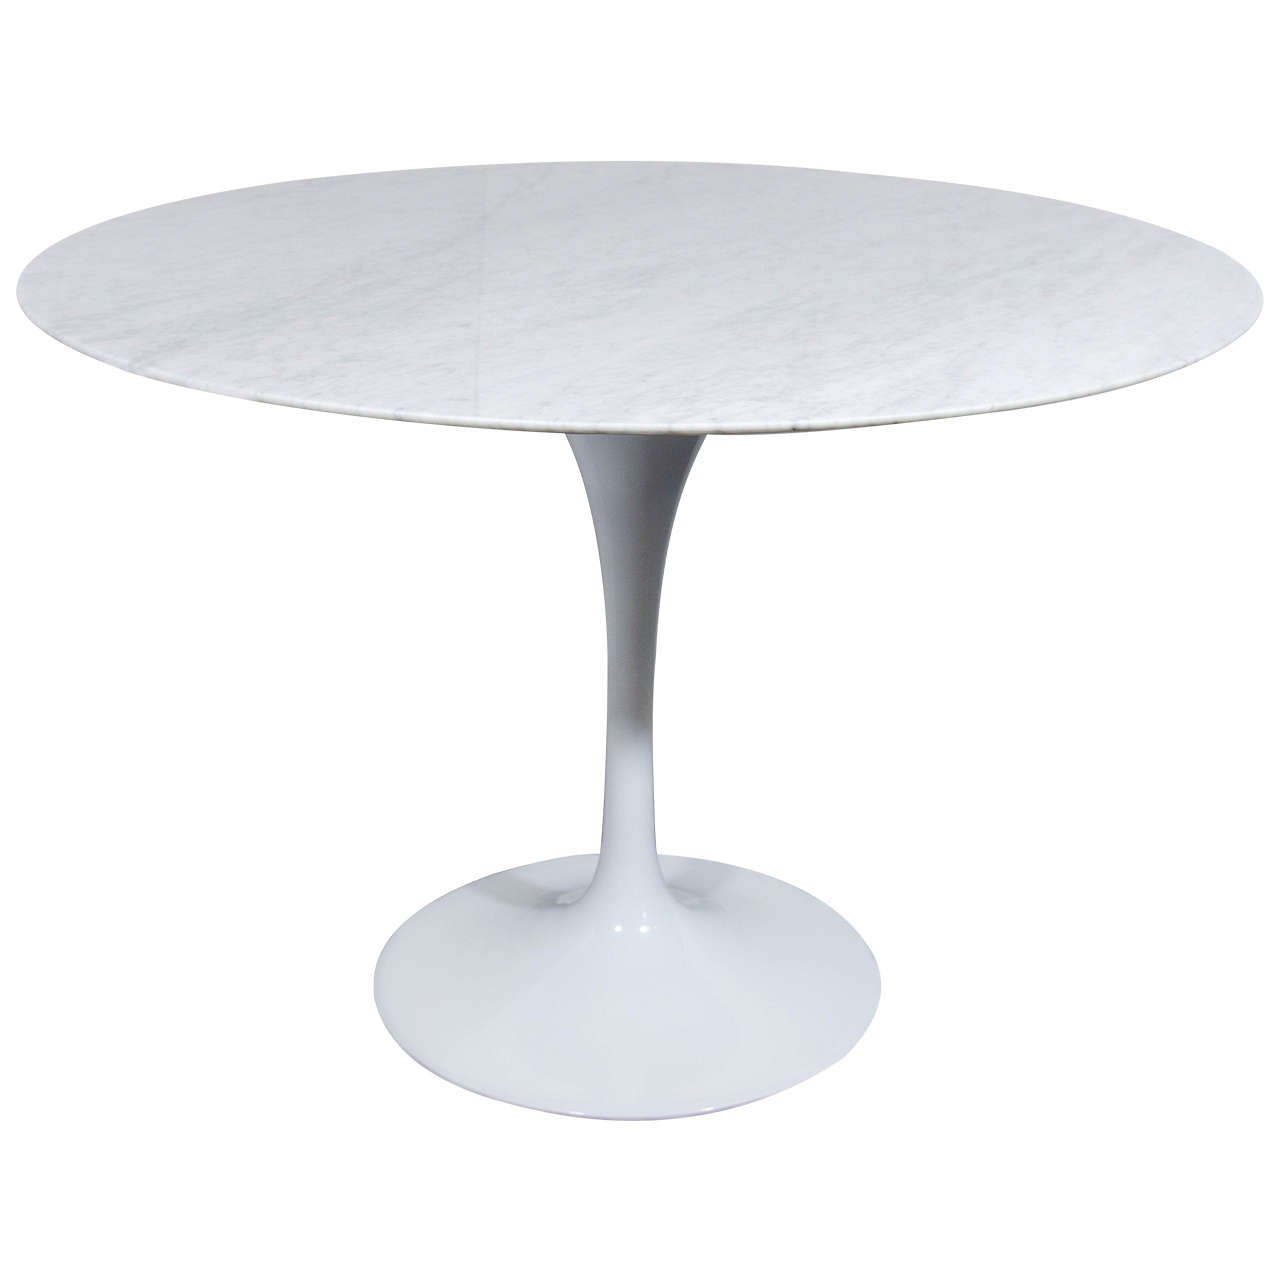 Tulip dining table in the manner of eero saarinen at 1stdibs for Tulip dining table